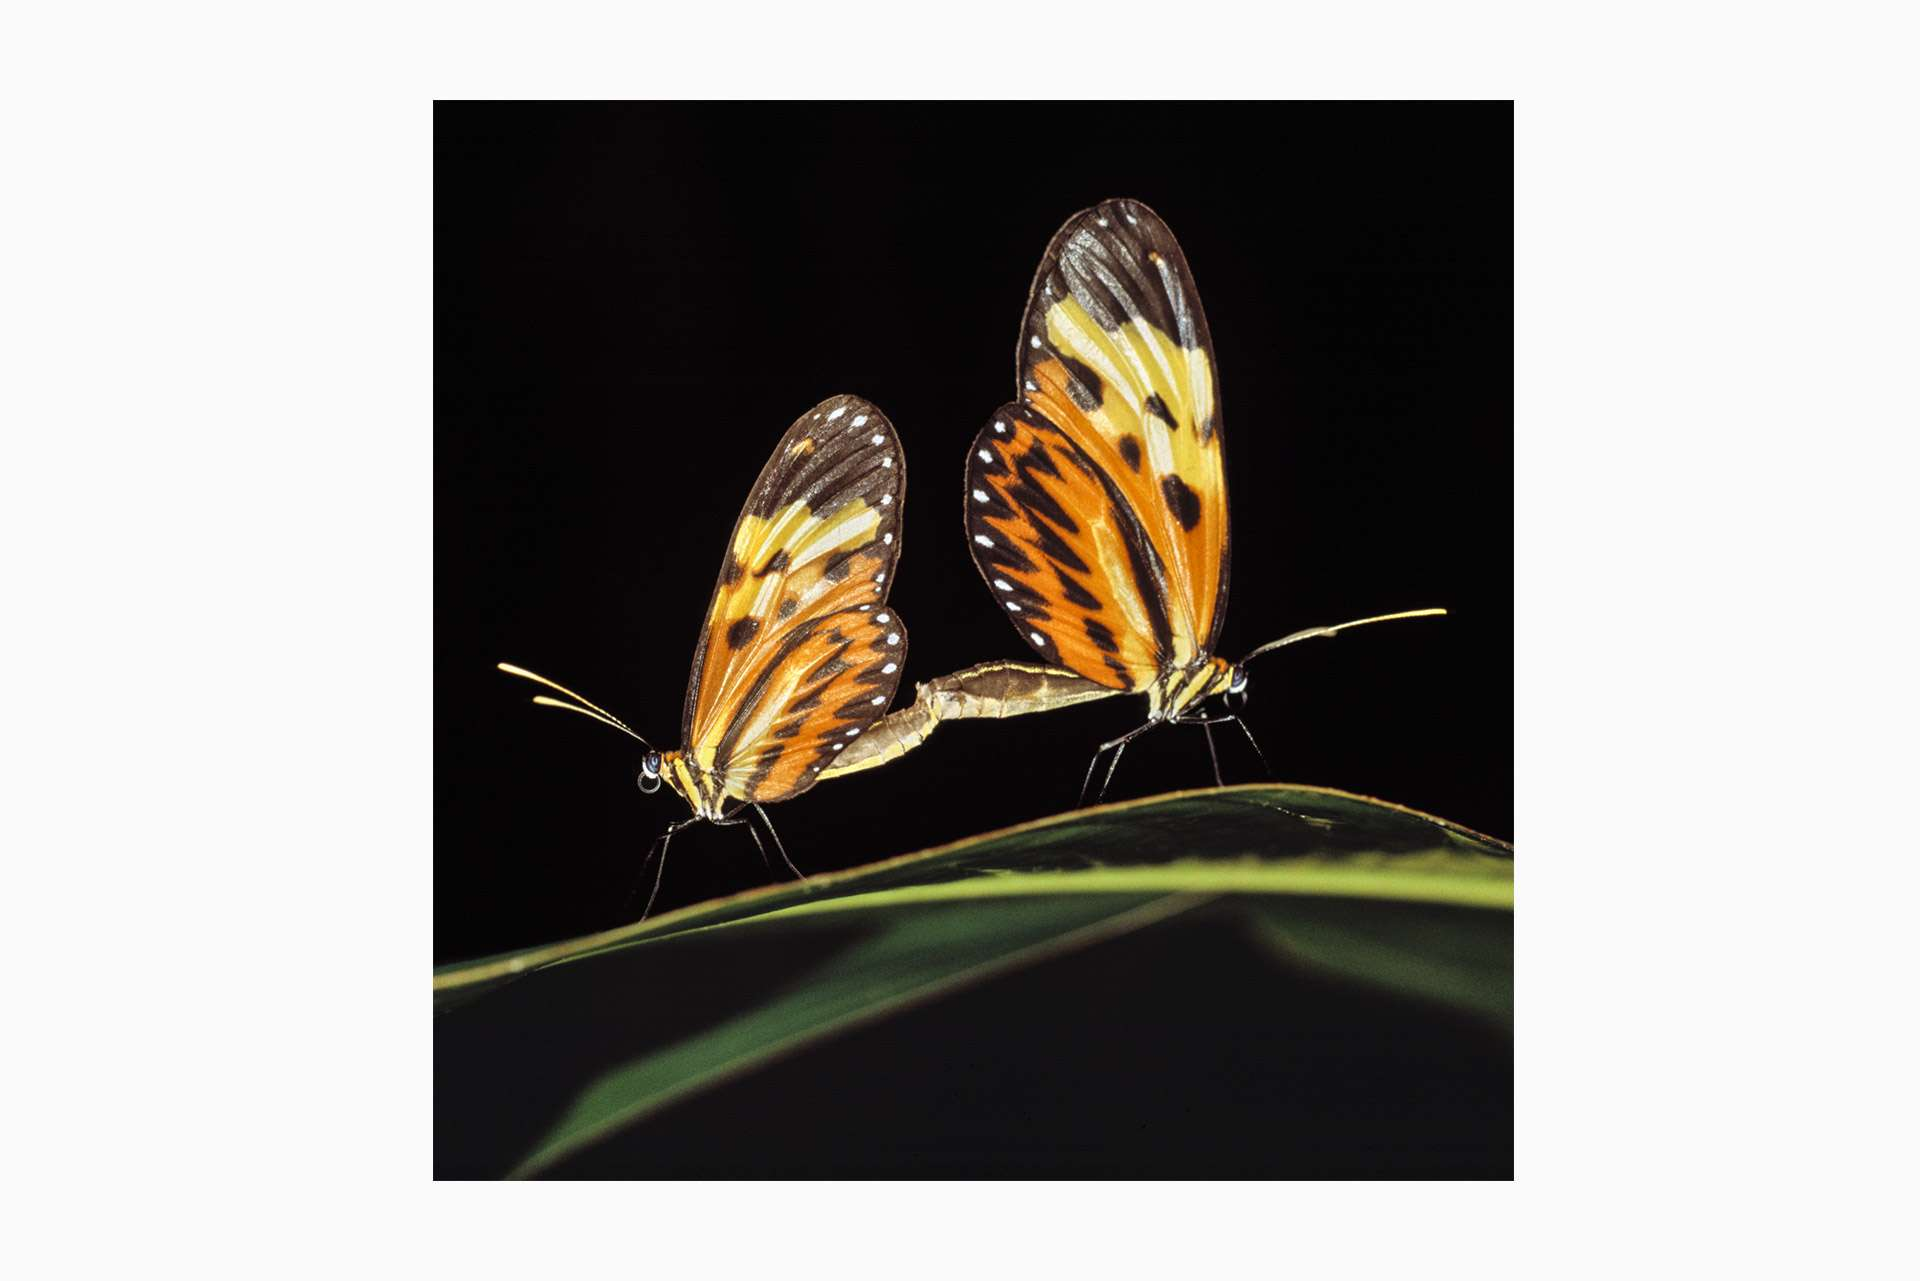 Gilles Martin's photograph of a butterfly from Suriname